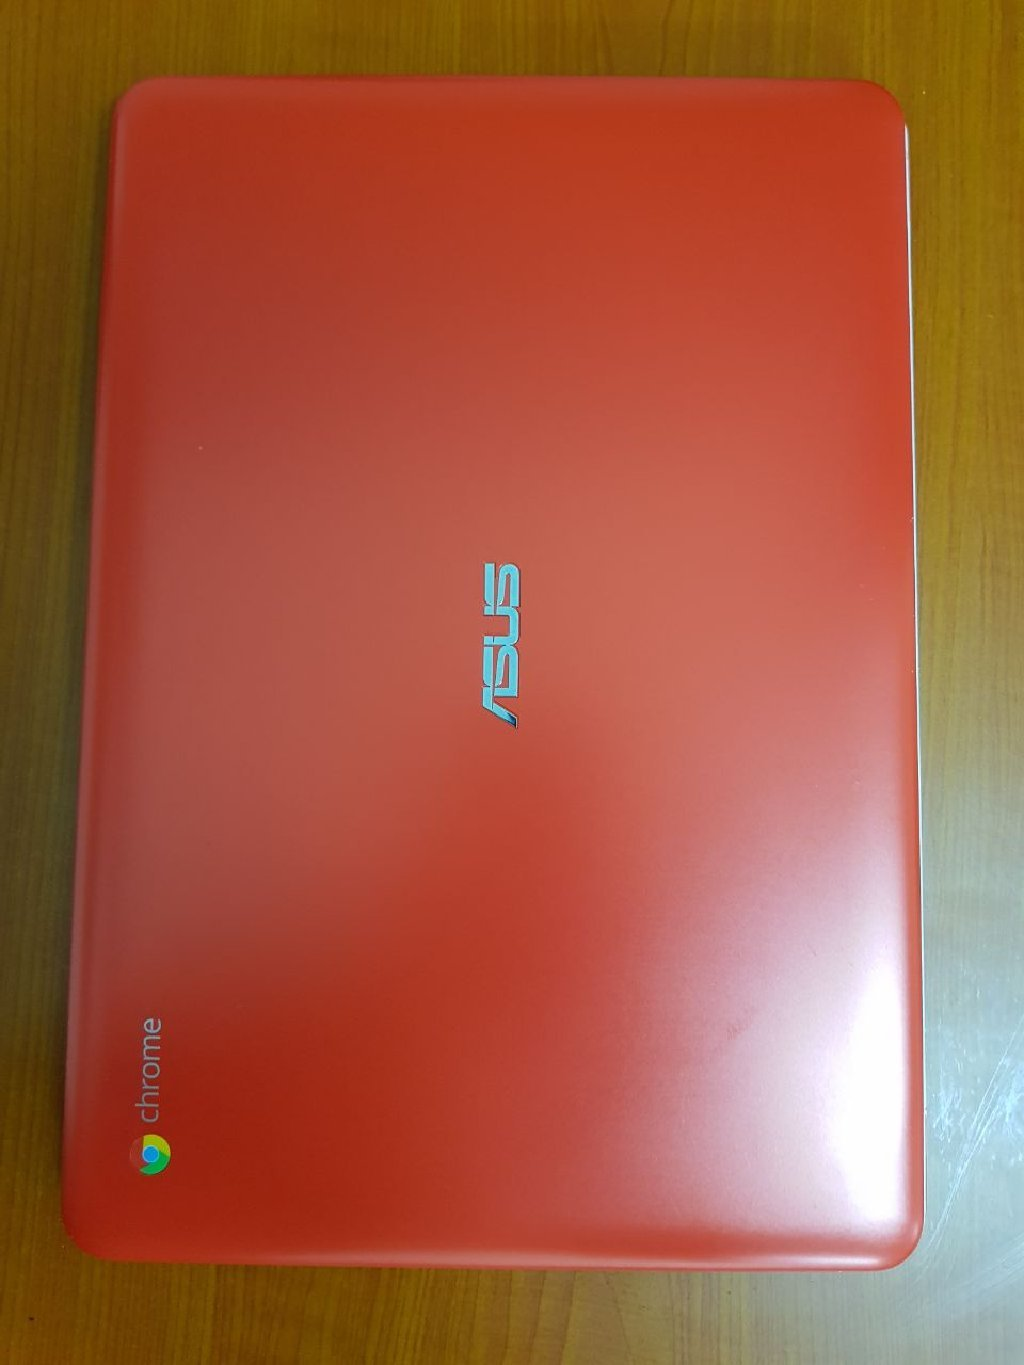 Asus Chromebook Limited Edition, Orange